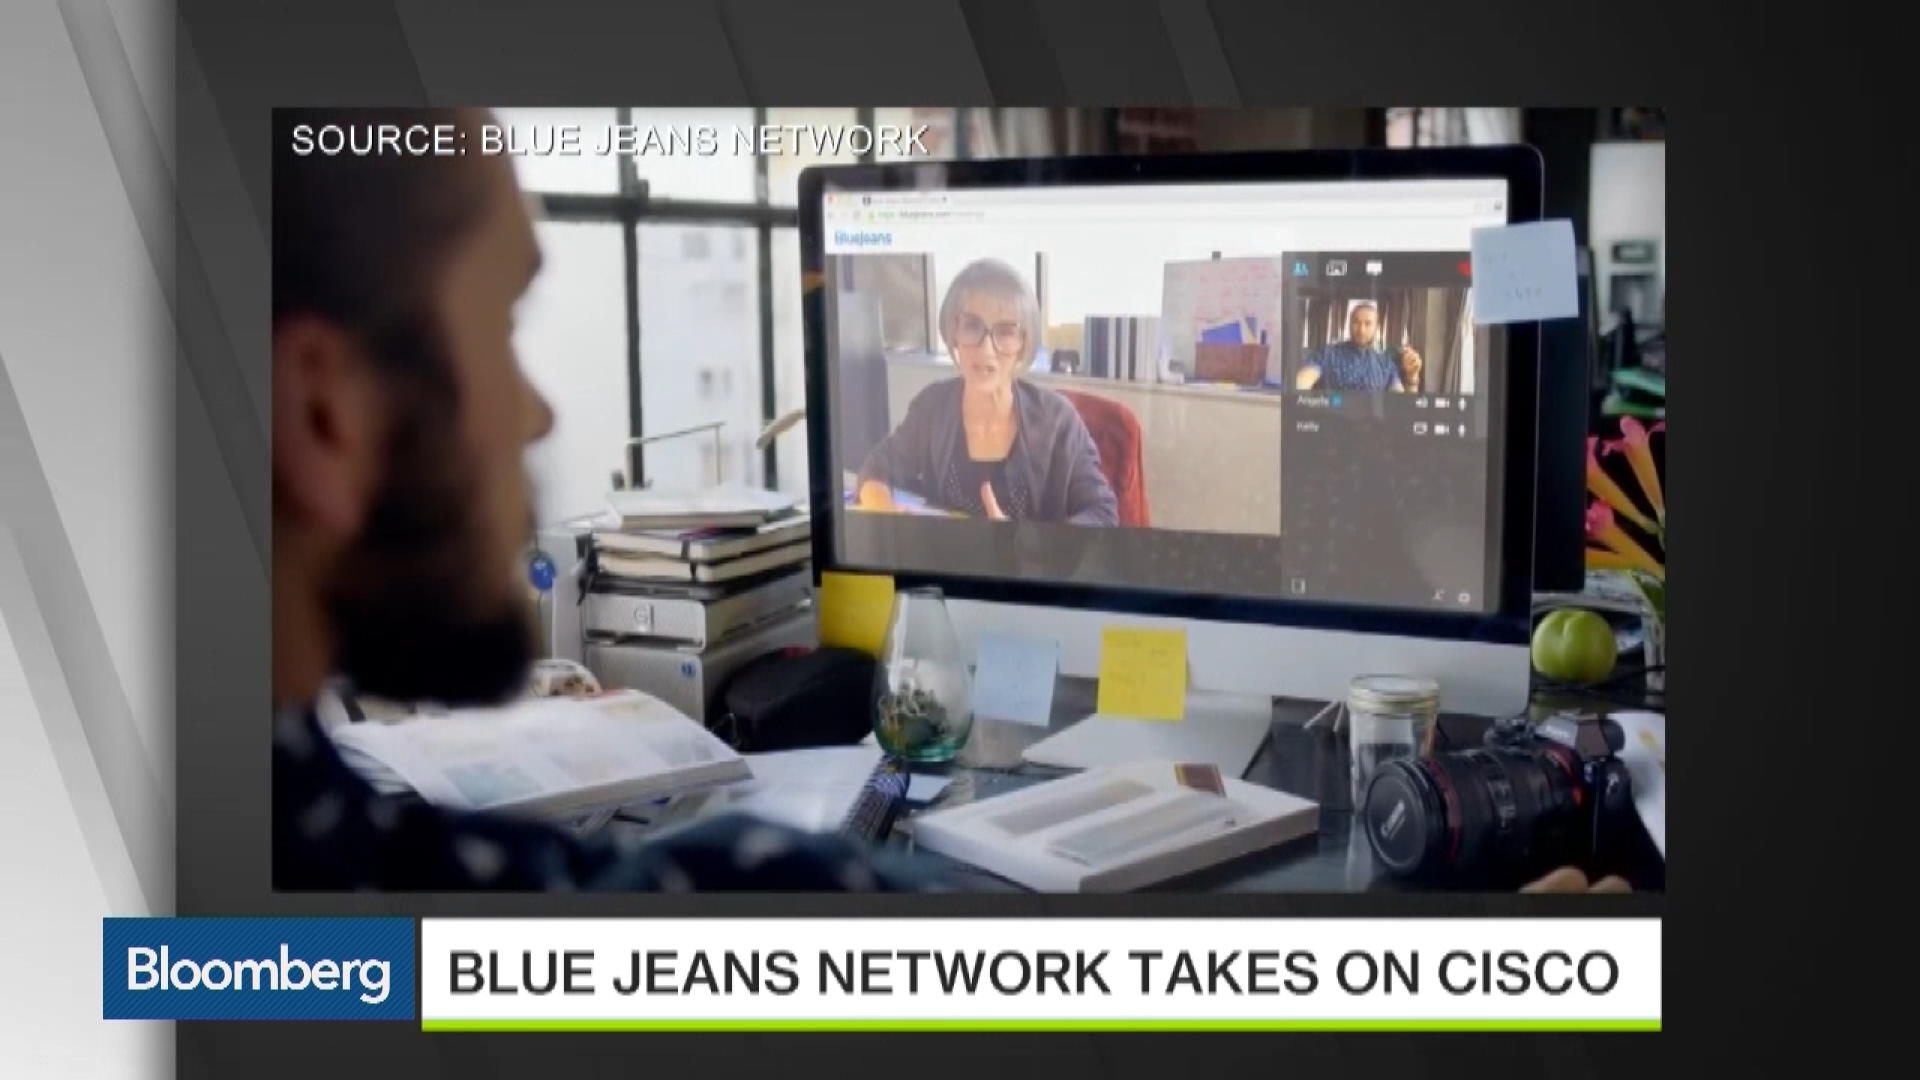 blue jeans network takes on cisco bloomberg